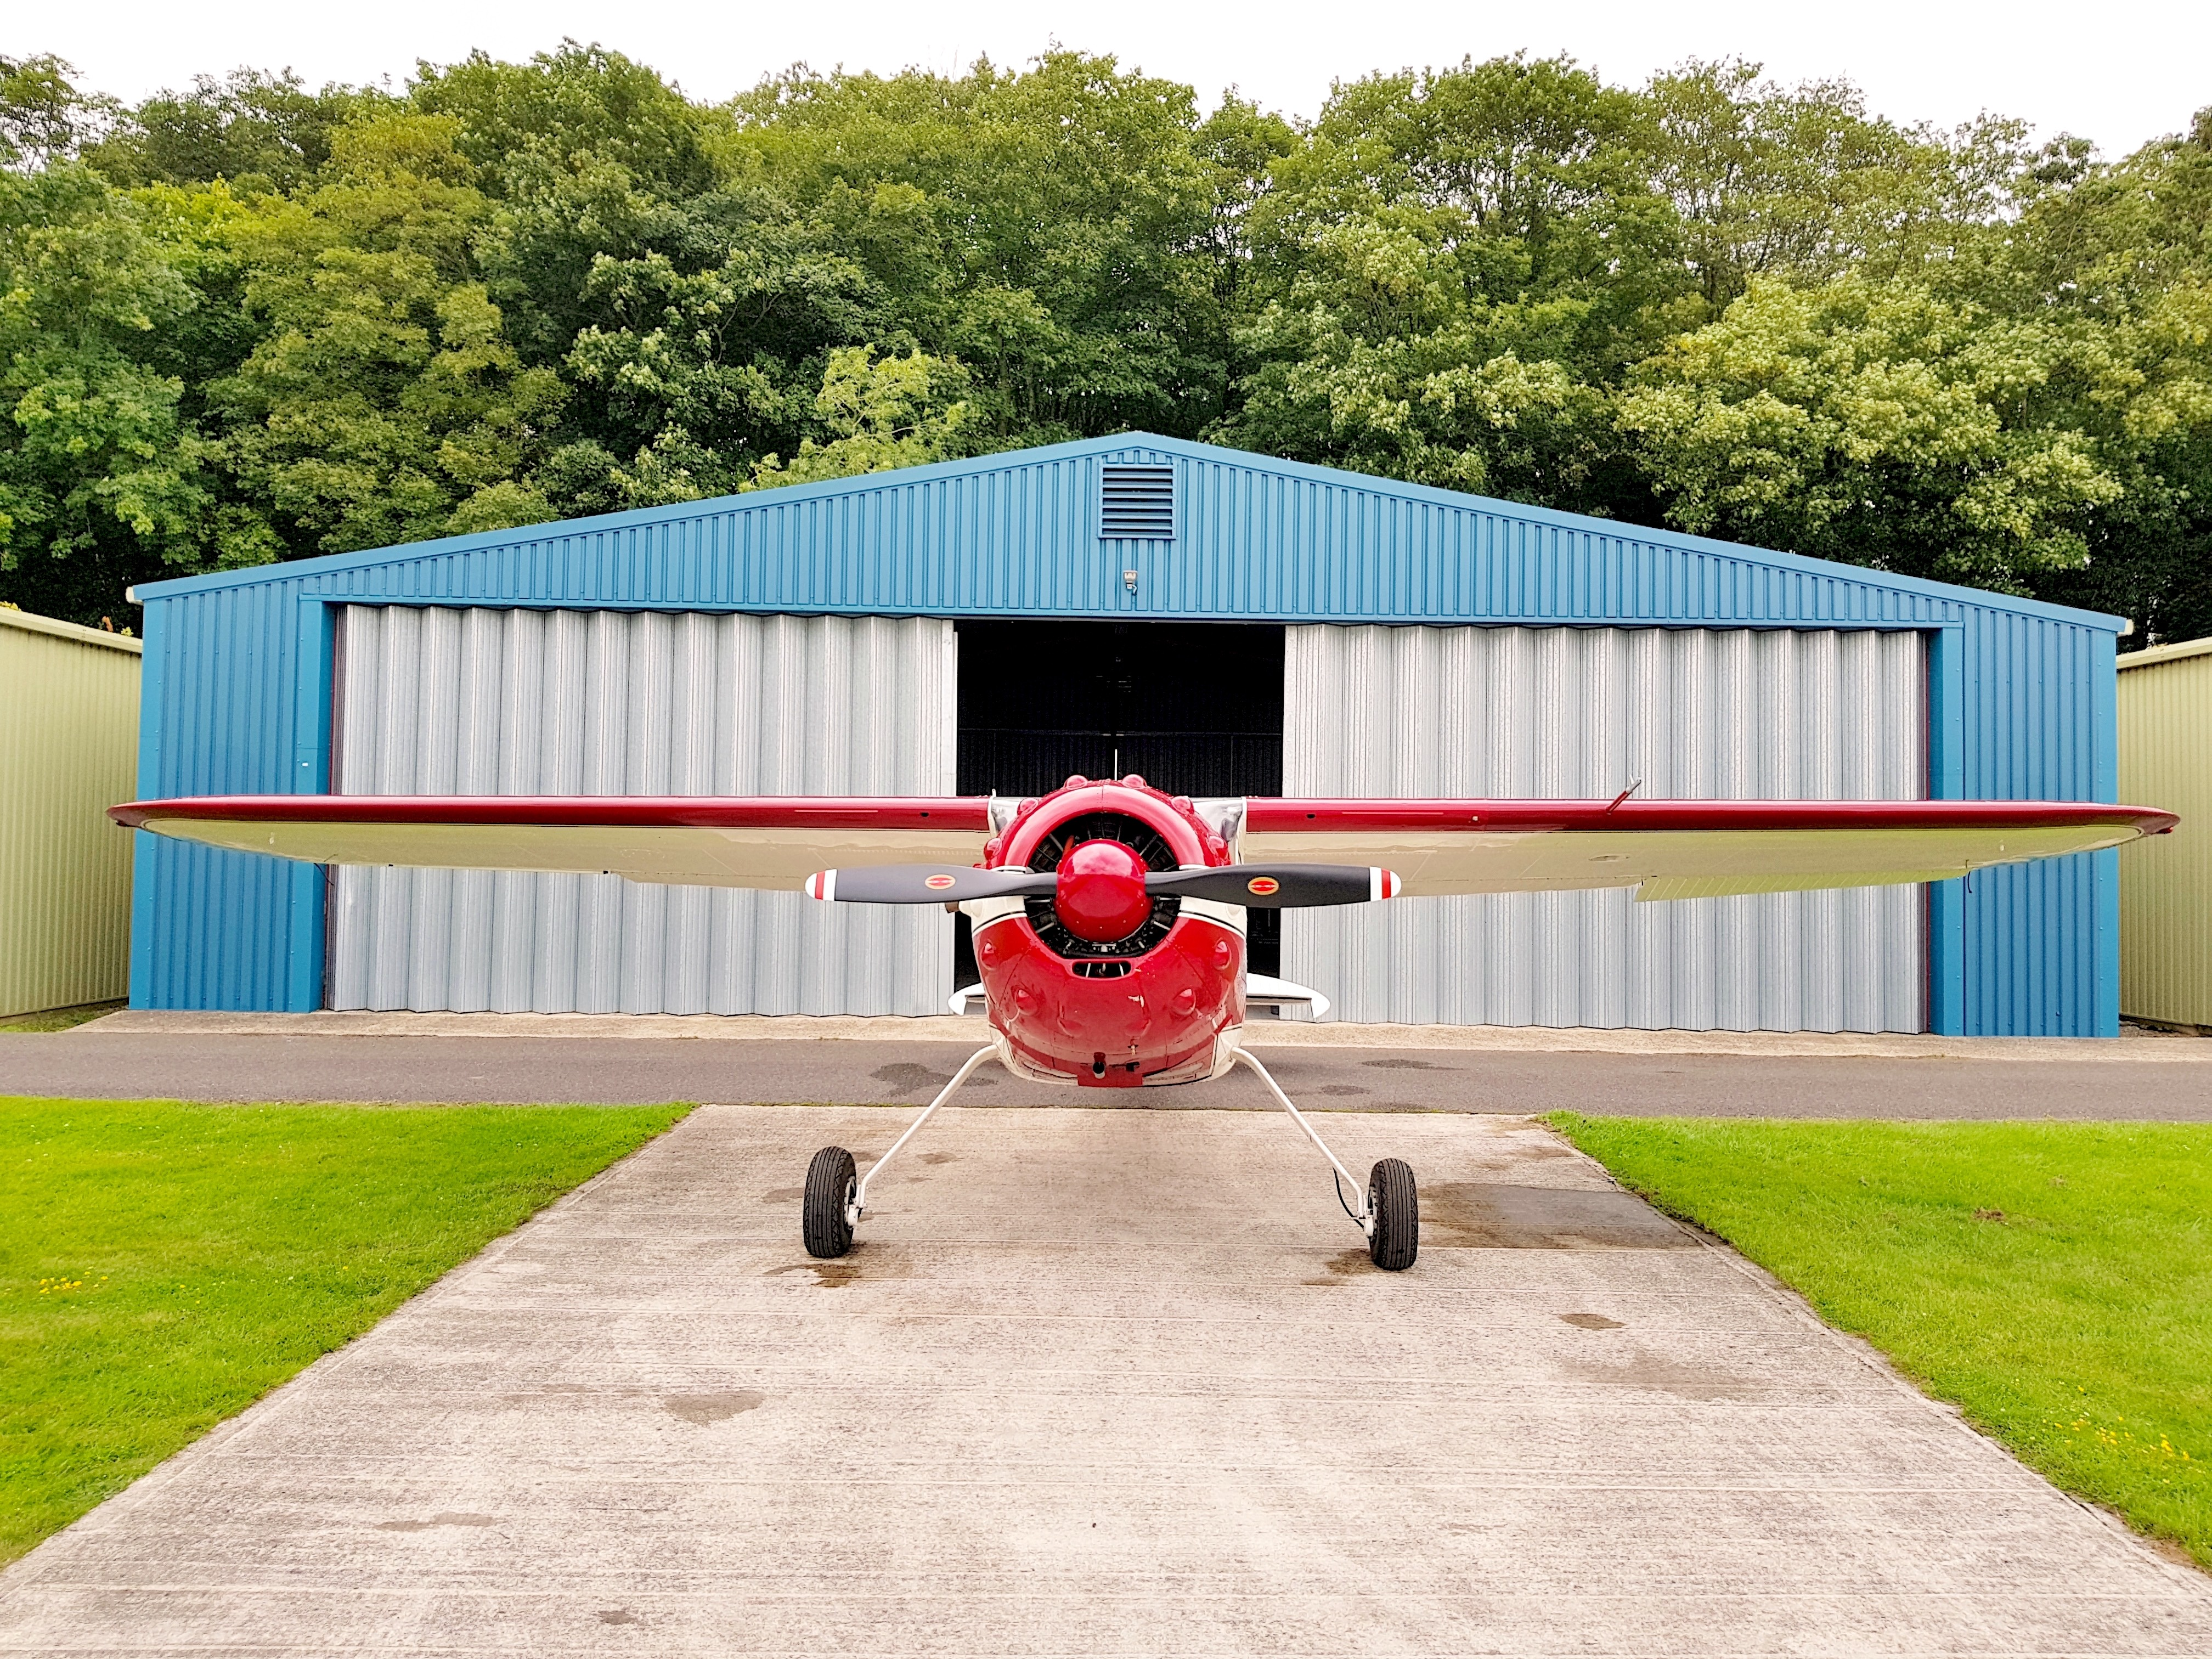 Cessna 195 Turbo for sale  1952  Classic Aircraft for sale